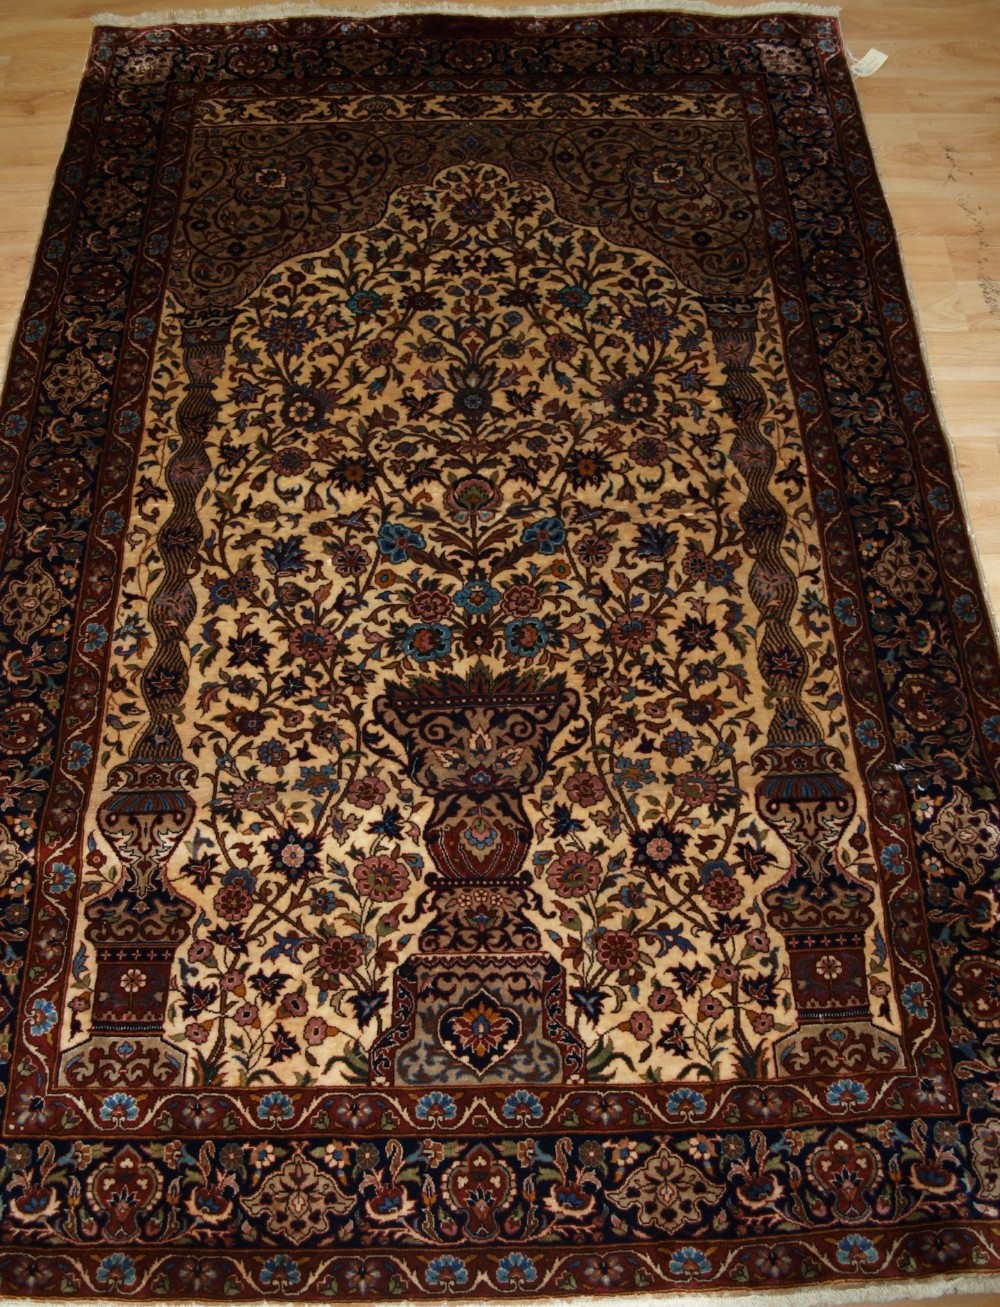 indian rug of classic isfahan vase prayer rug design about 30 years old